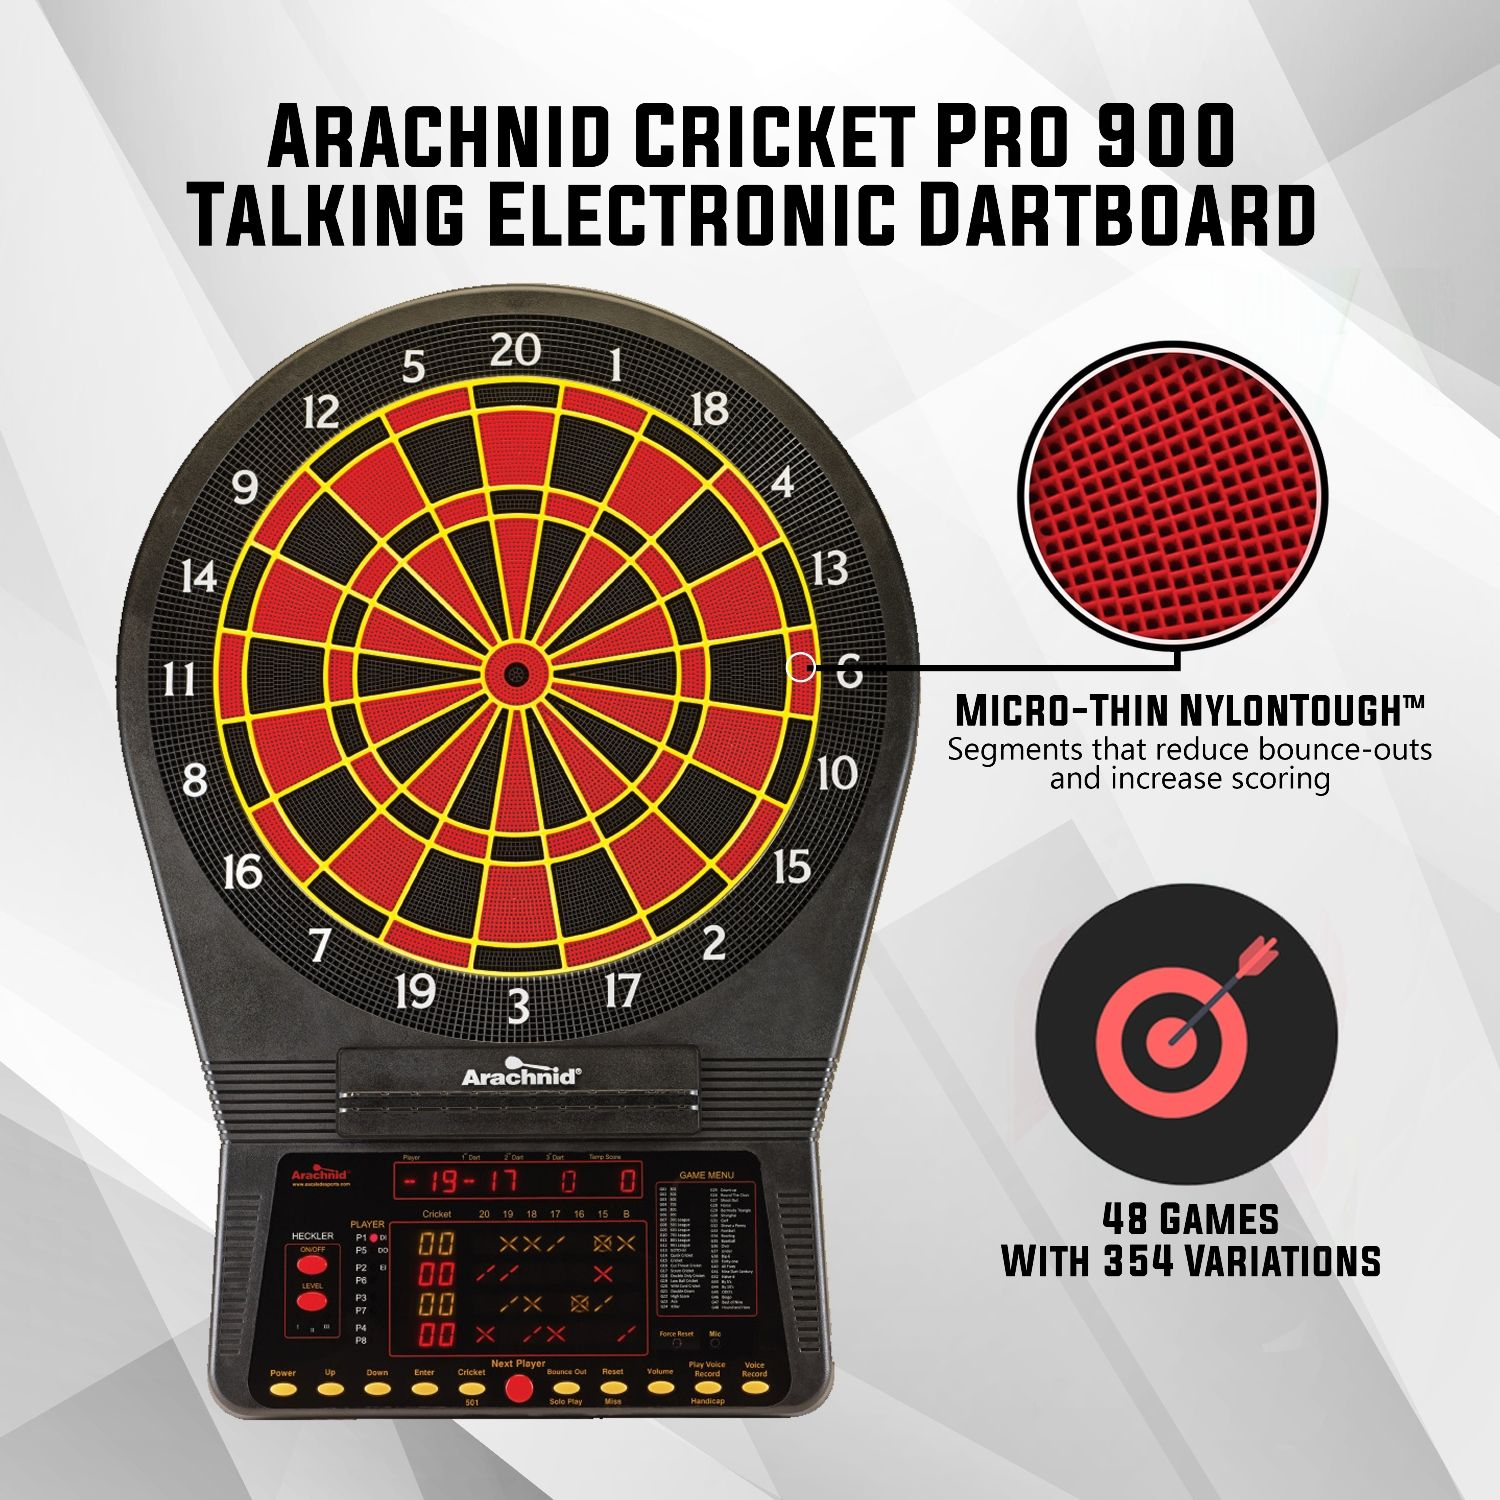 With the new and improved Arachnid Cricket Pro 900 Talking